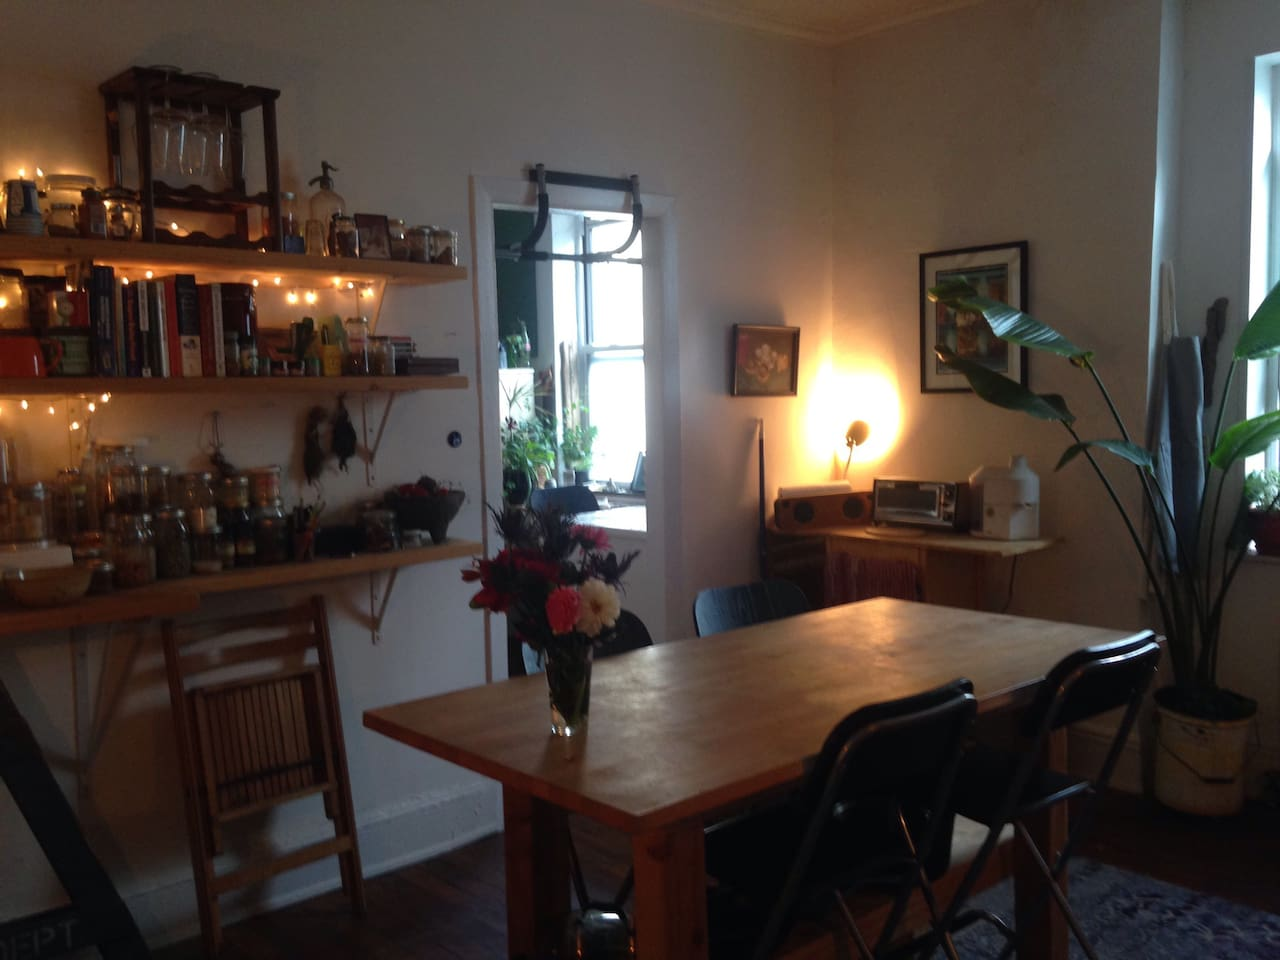 Kitchen table, looking into living room/studio